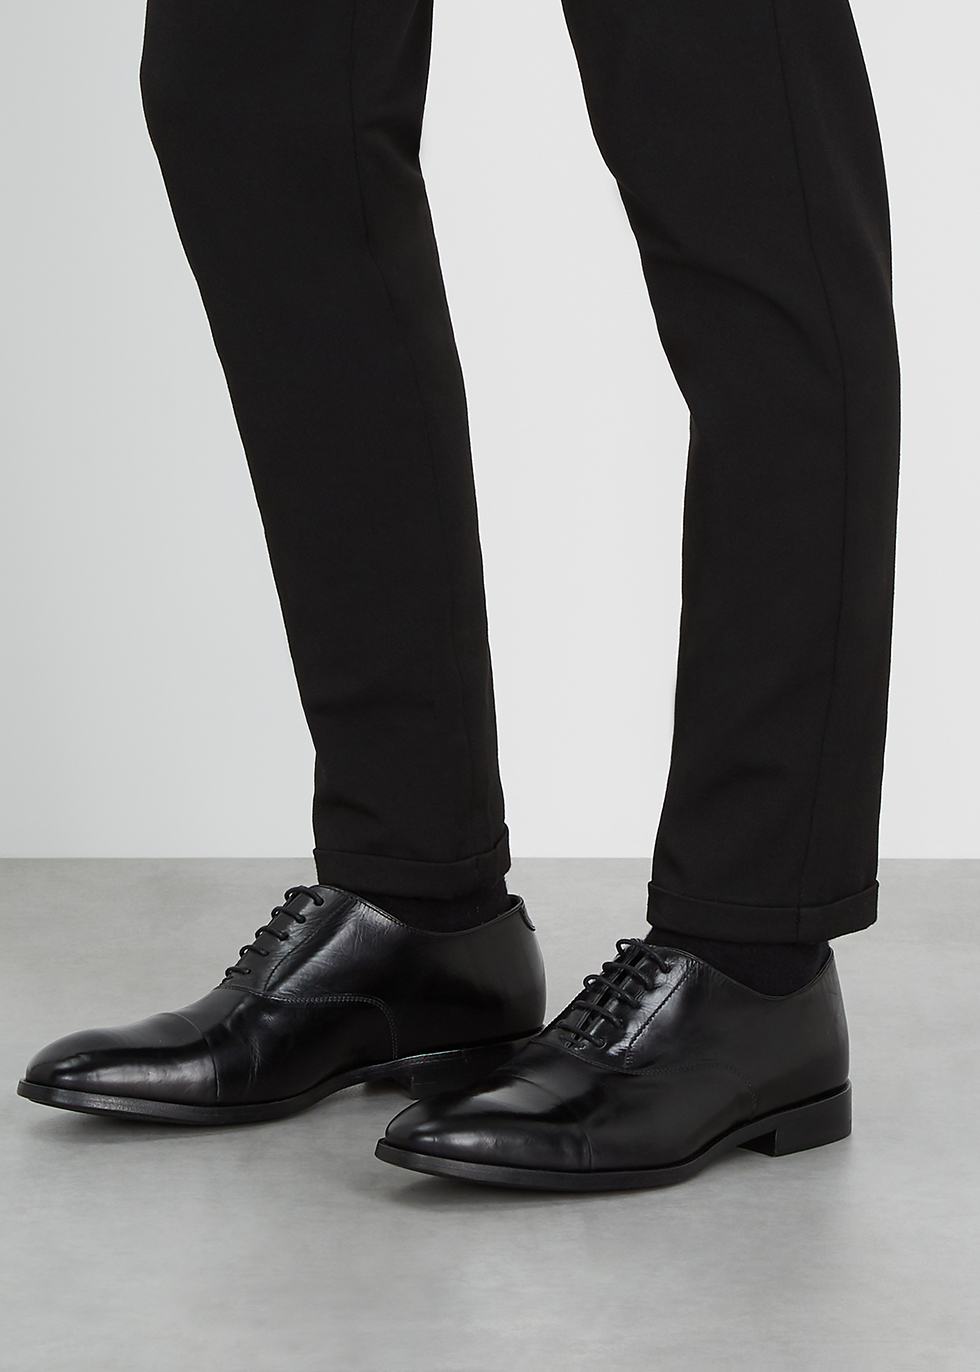 Paul Smith Brent black leather Oxford